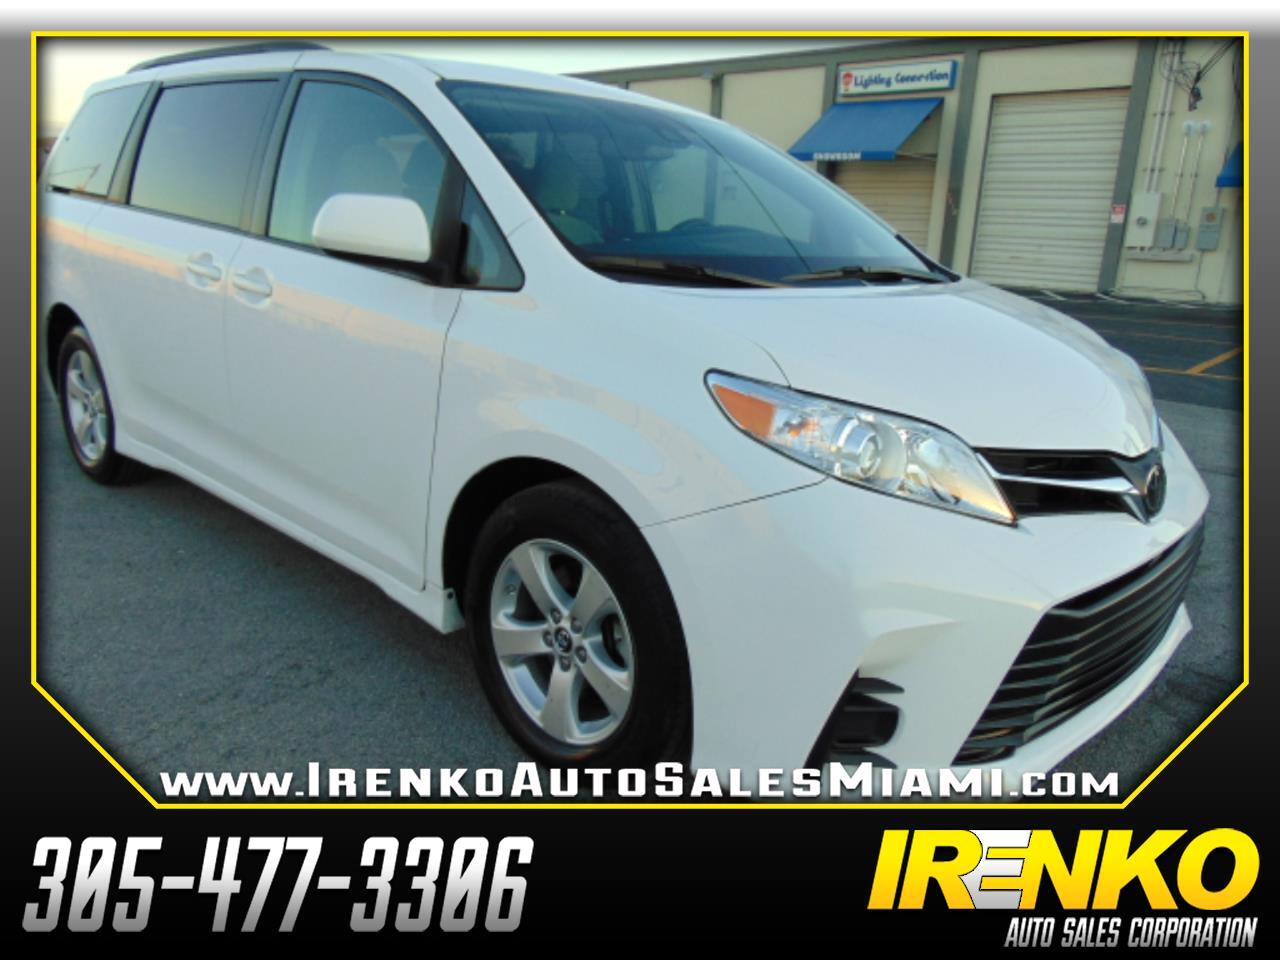 2018 Toyota Sienna LE FWD 8-Passenger (Natl)